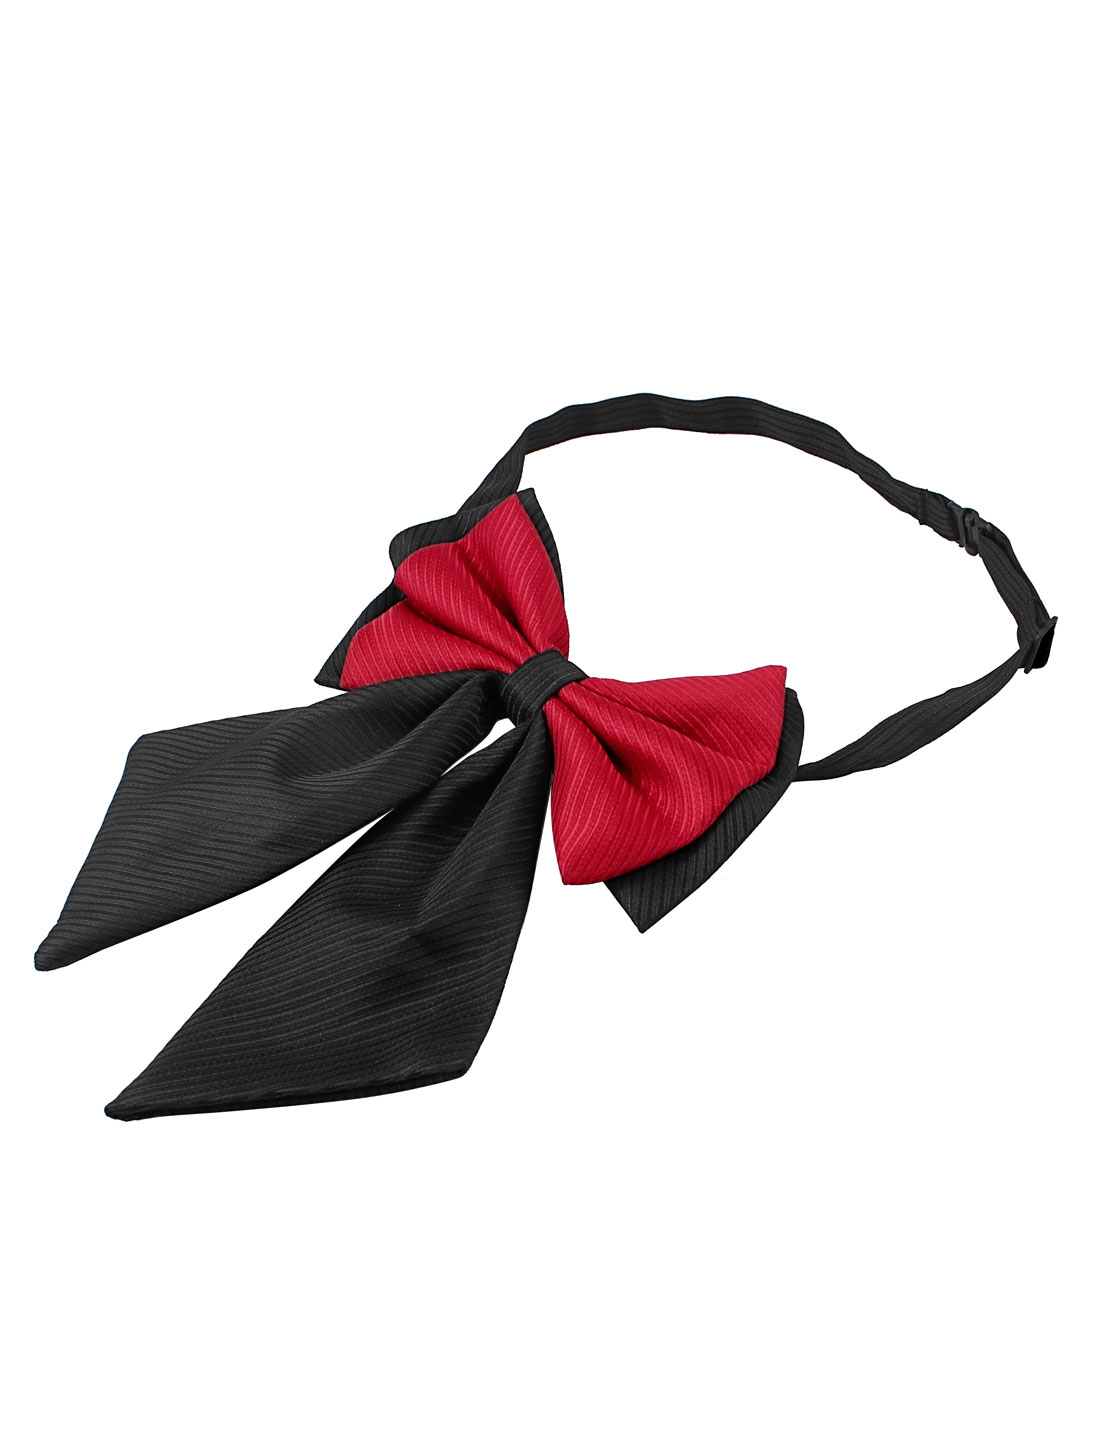 Man Stripe Pattern Polyester Bowknot Pre-tied Bow Tie Black Red